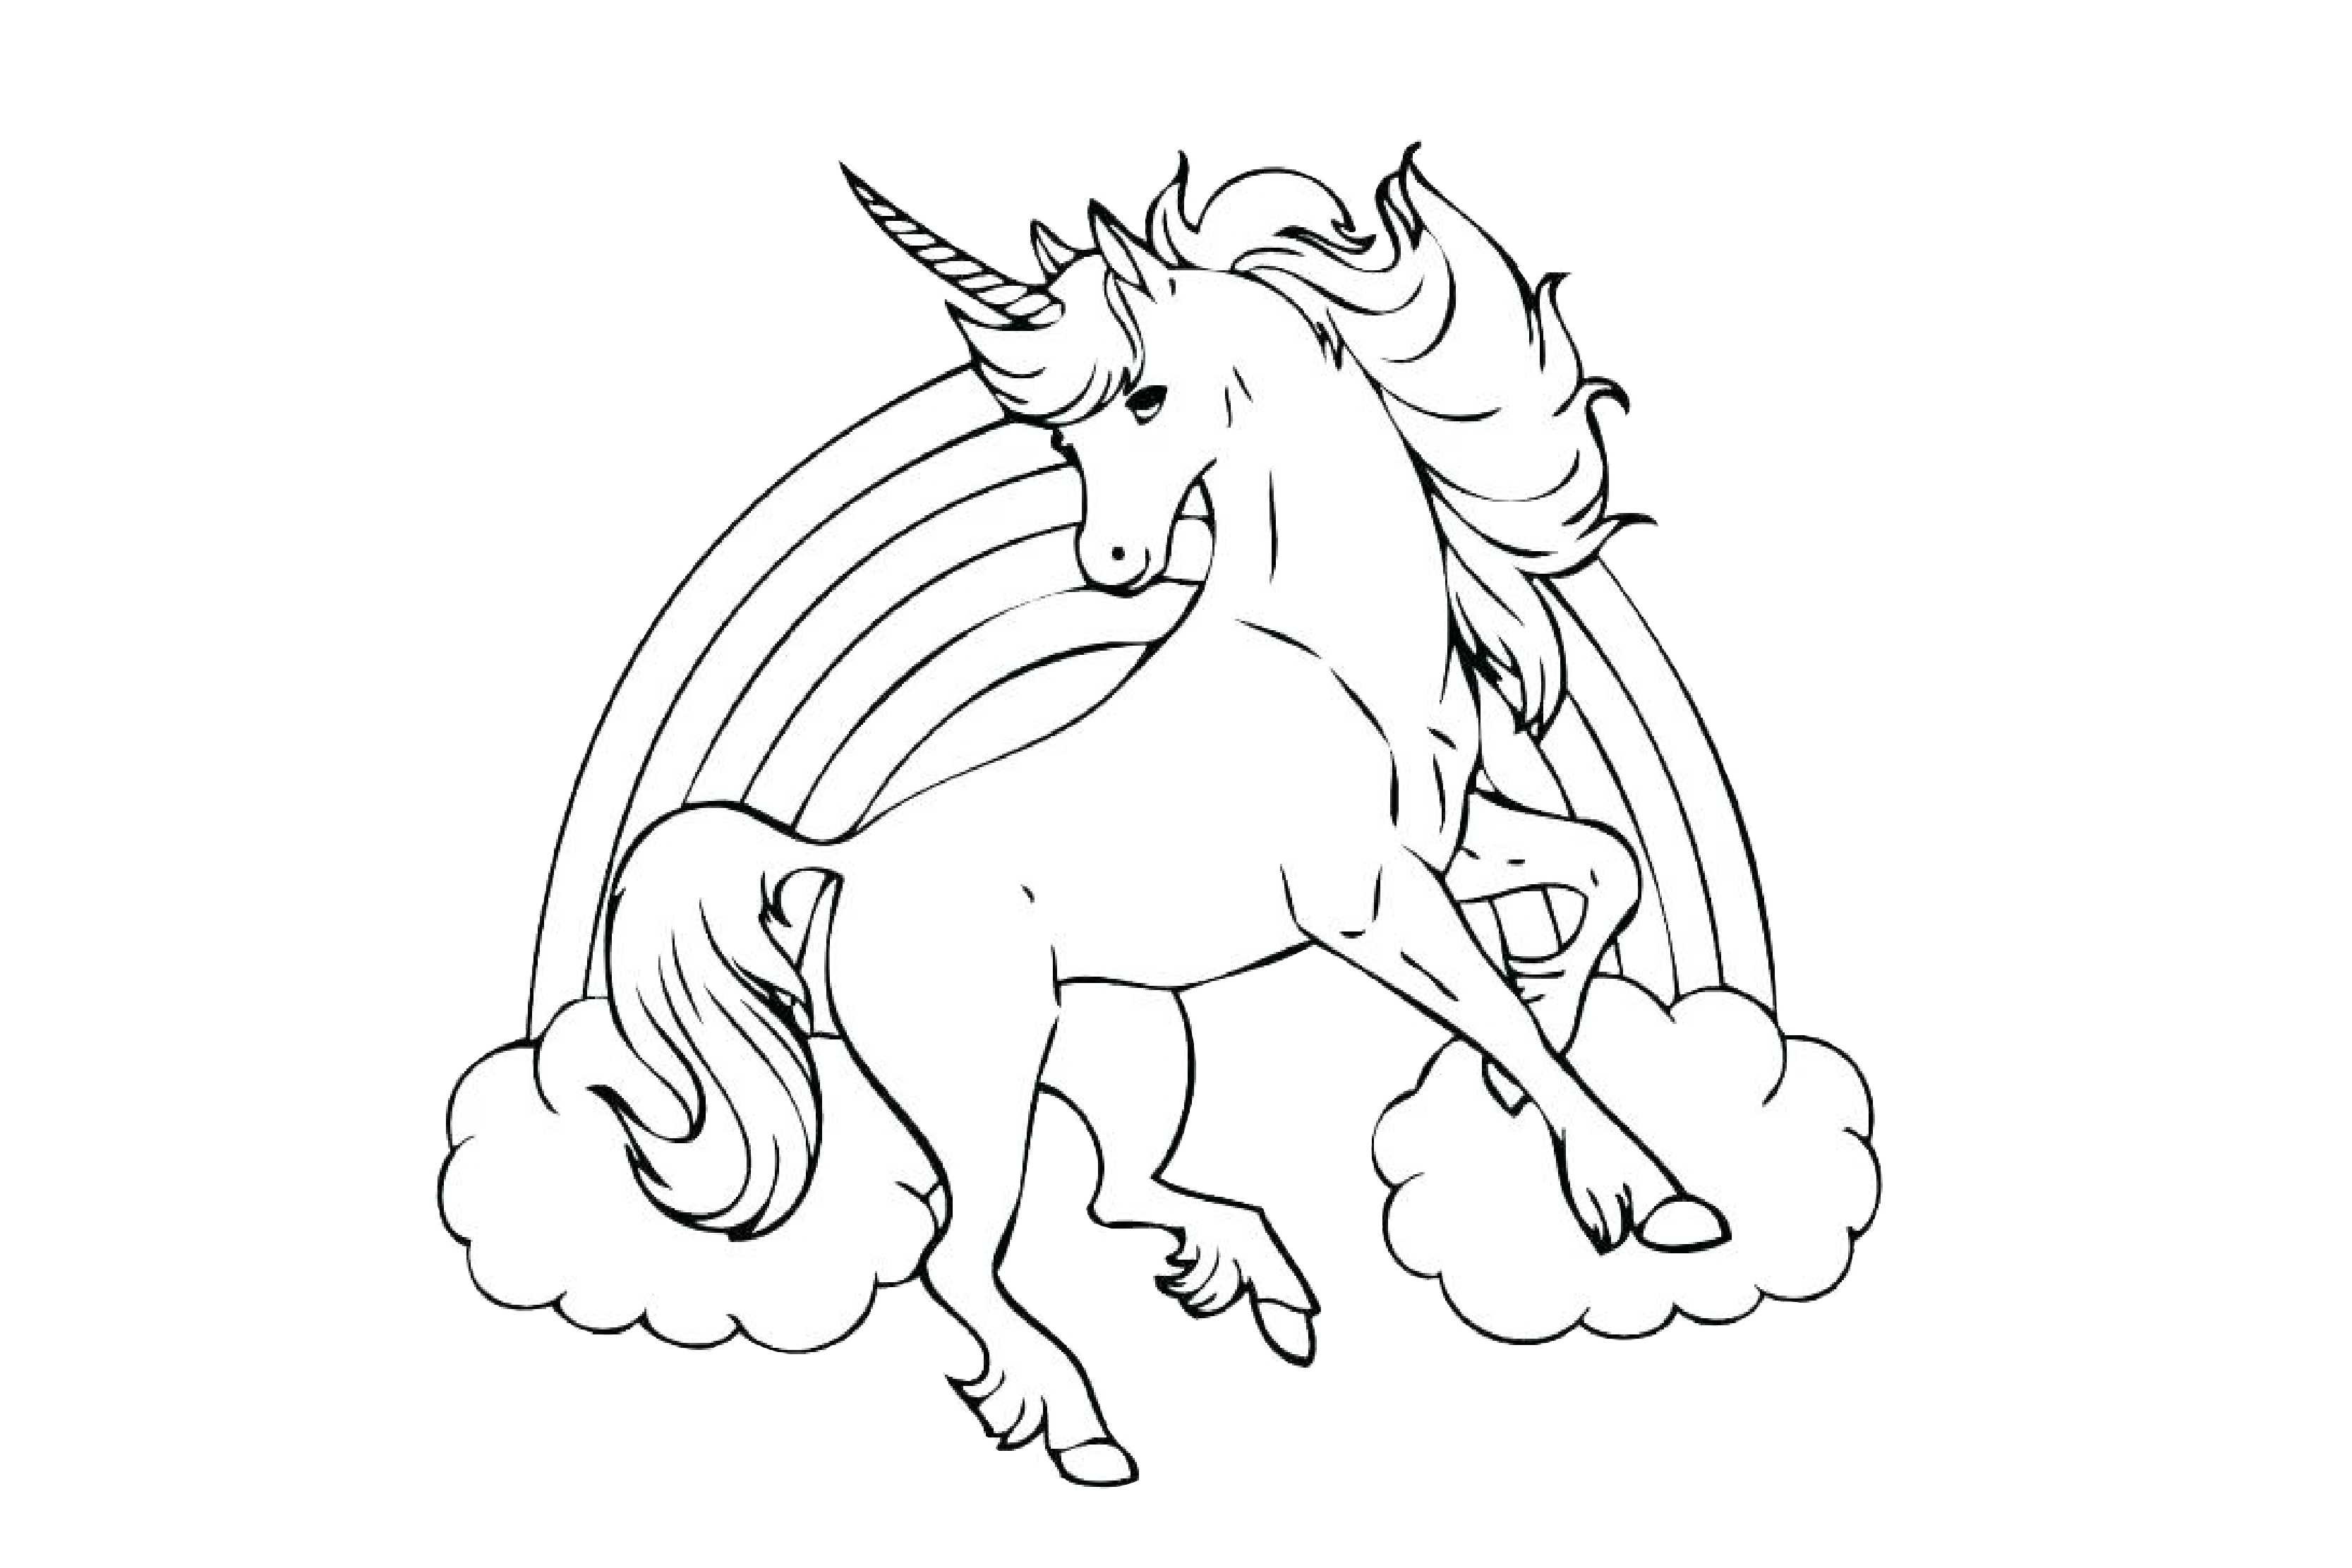 Rainbow Unicorn Coloring Pages Flying - Print Color Craft | free printable coloring pages unicorn rainbow